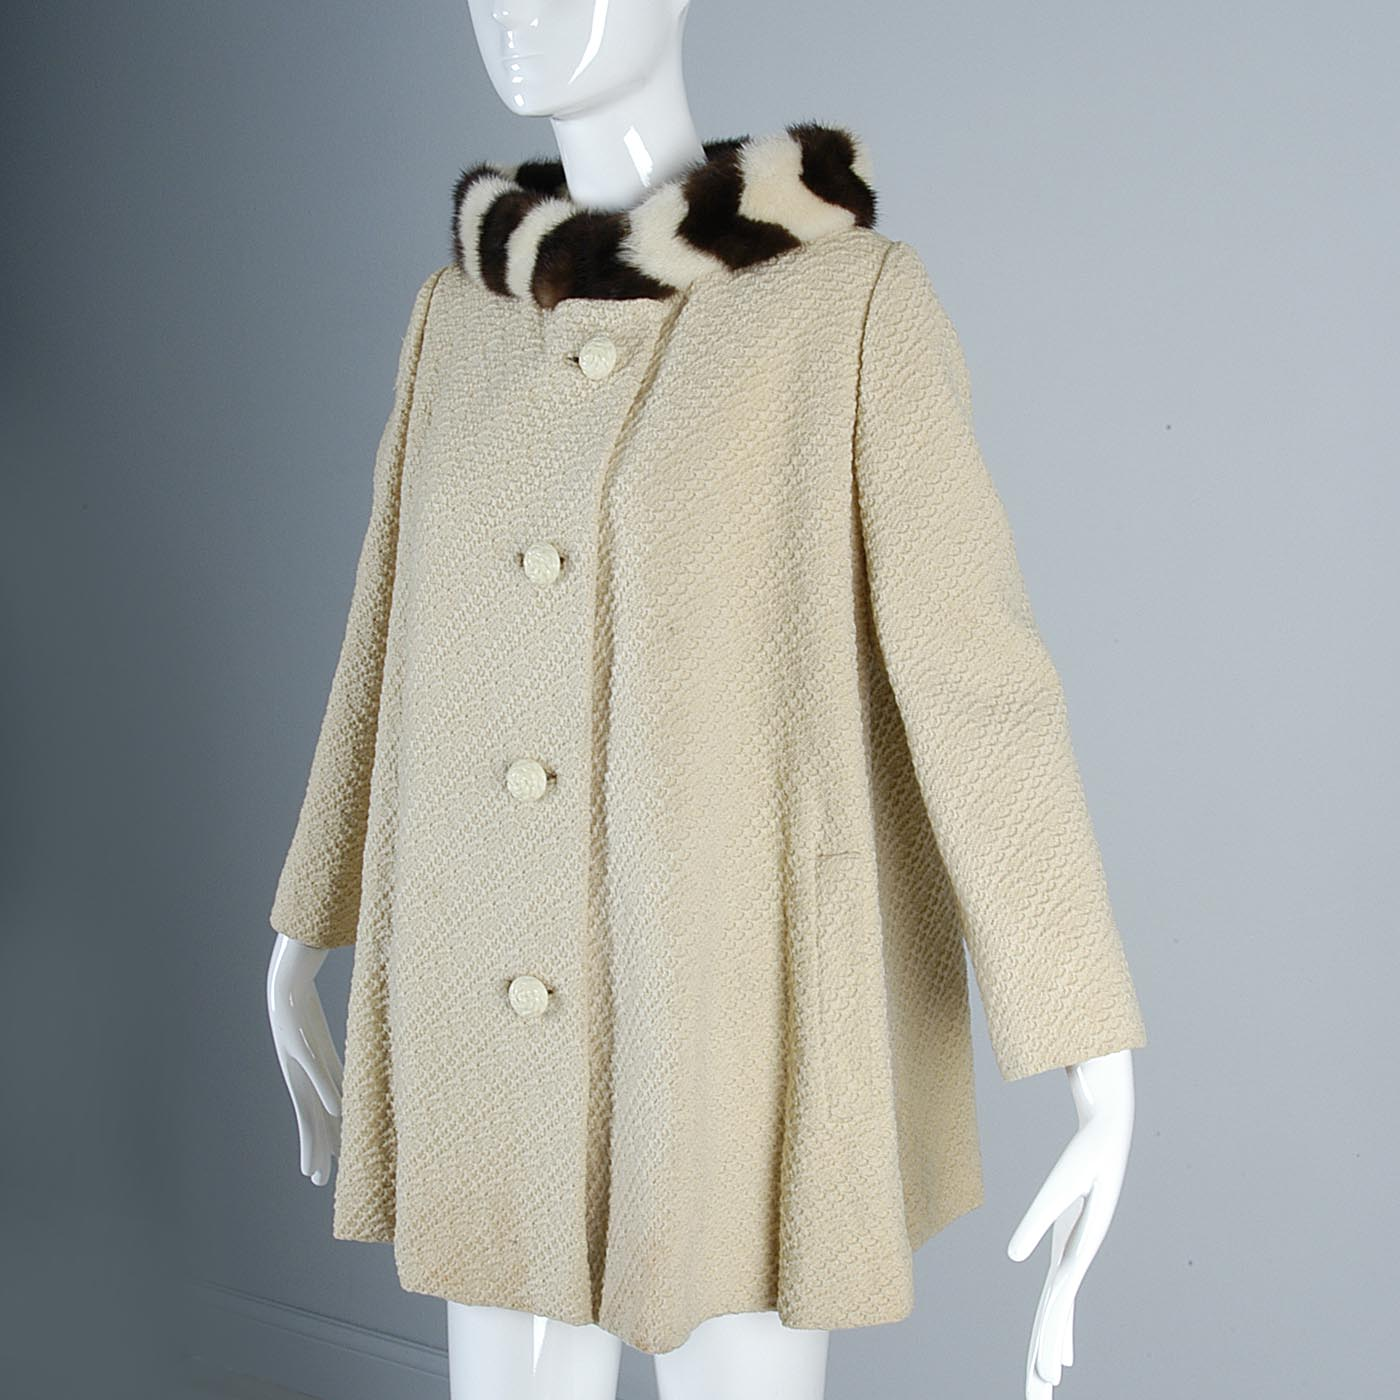 1950s Swing Jacket with Stripe Mink Collar